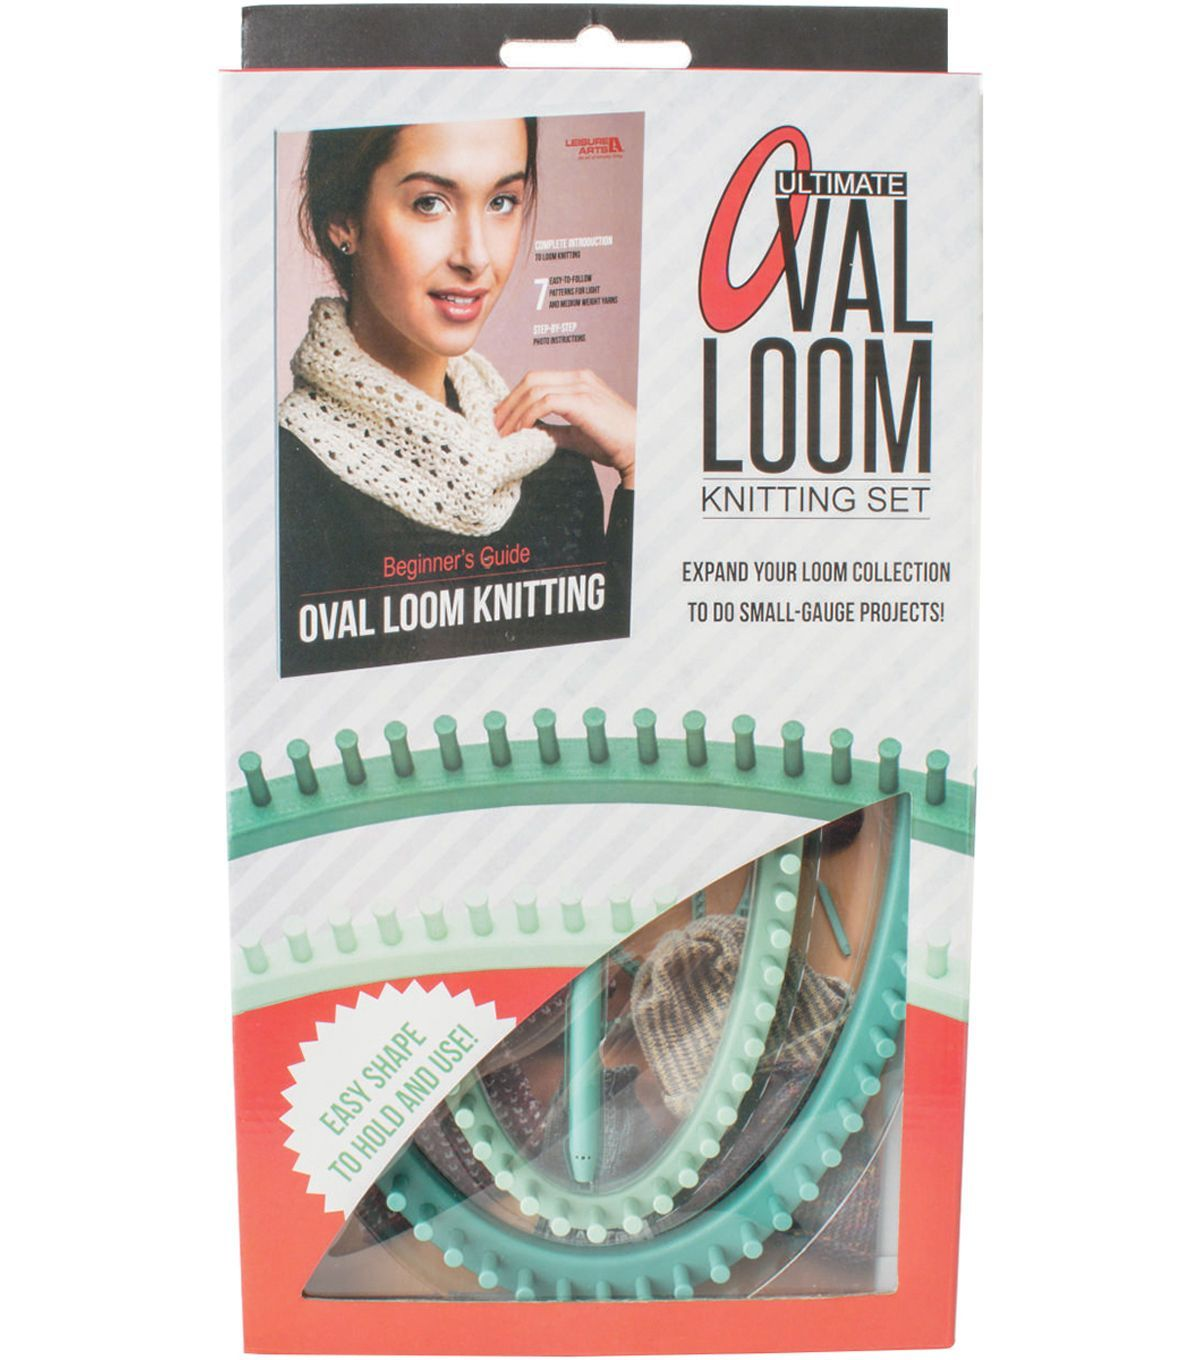 Ultimate Oval Loom Knitting Set For Beginners - Needle Arts at JOANN ...